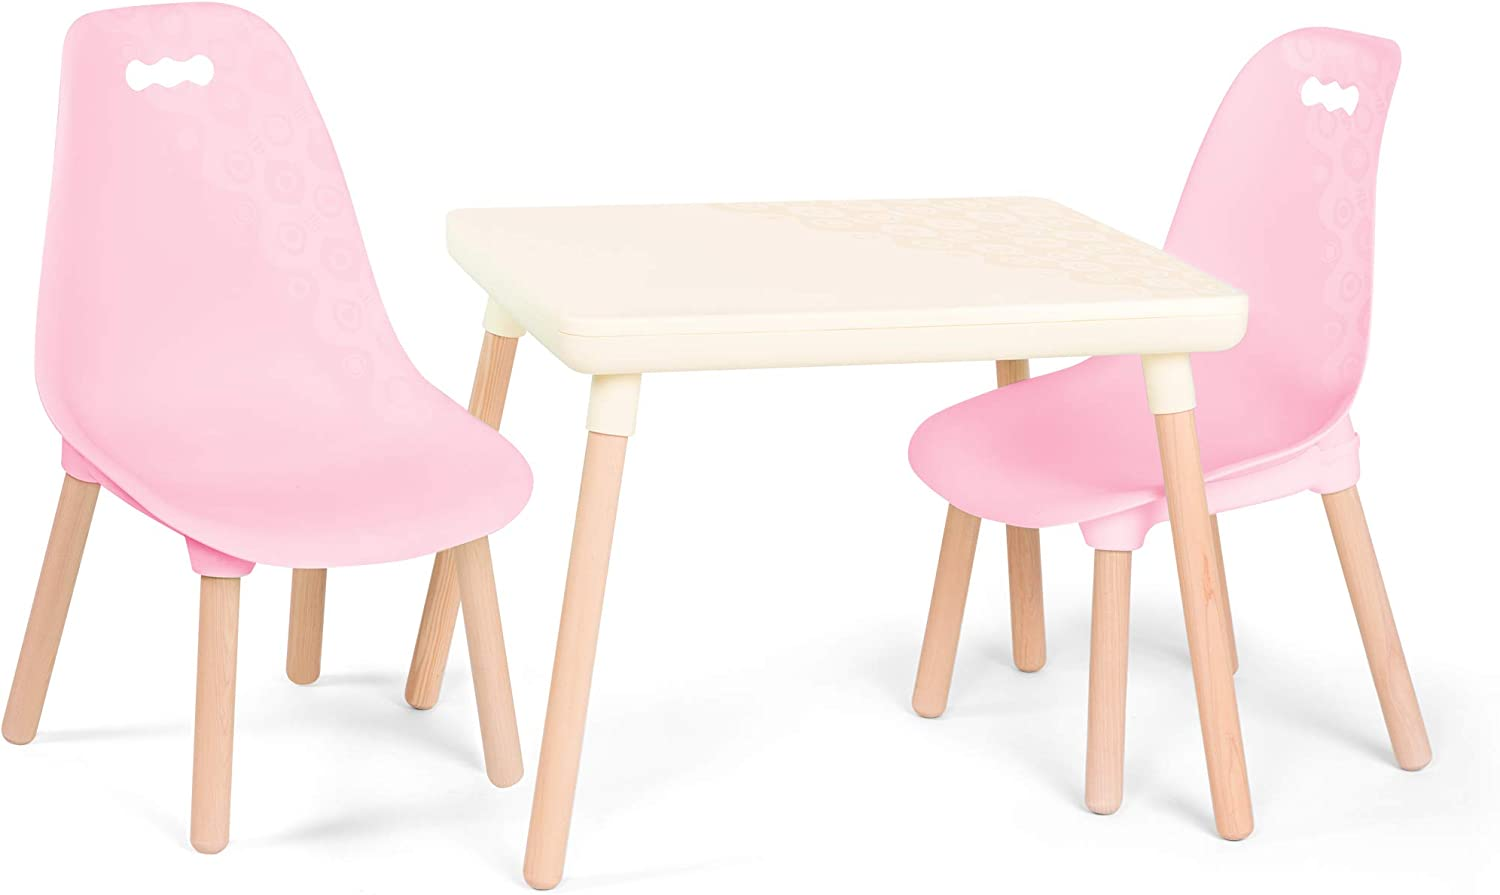 B. spaces – Kids Table and Chair Set – 1 Craft Table & 2 Kids Chairs – Natural Wooden Legs – Furniture for Kids – Pink & Ivory – 3 Years +